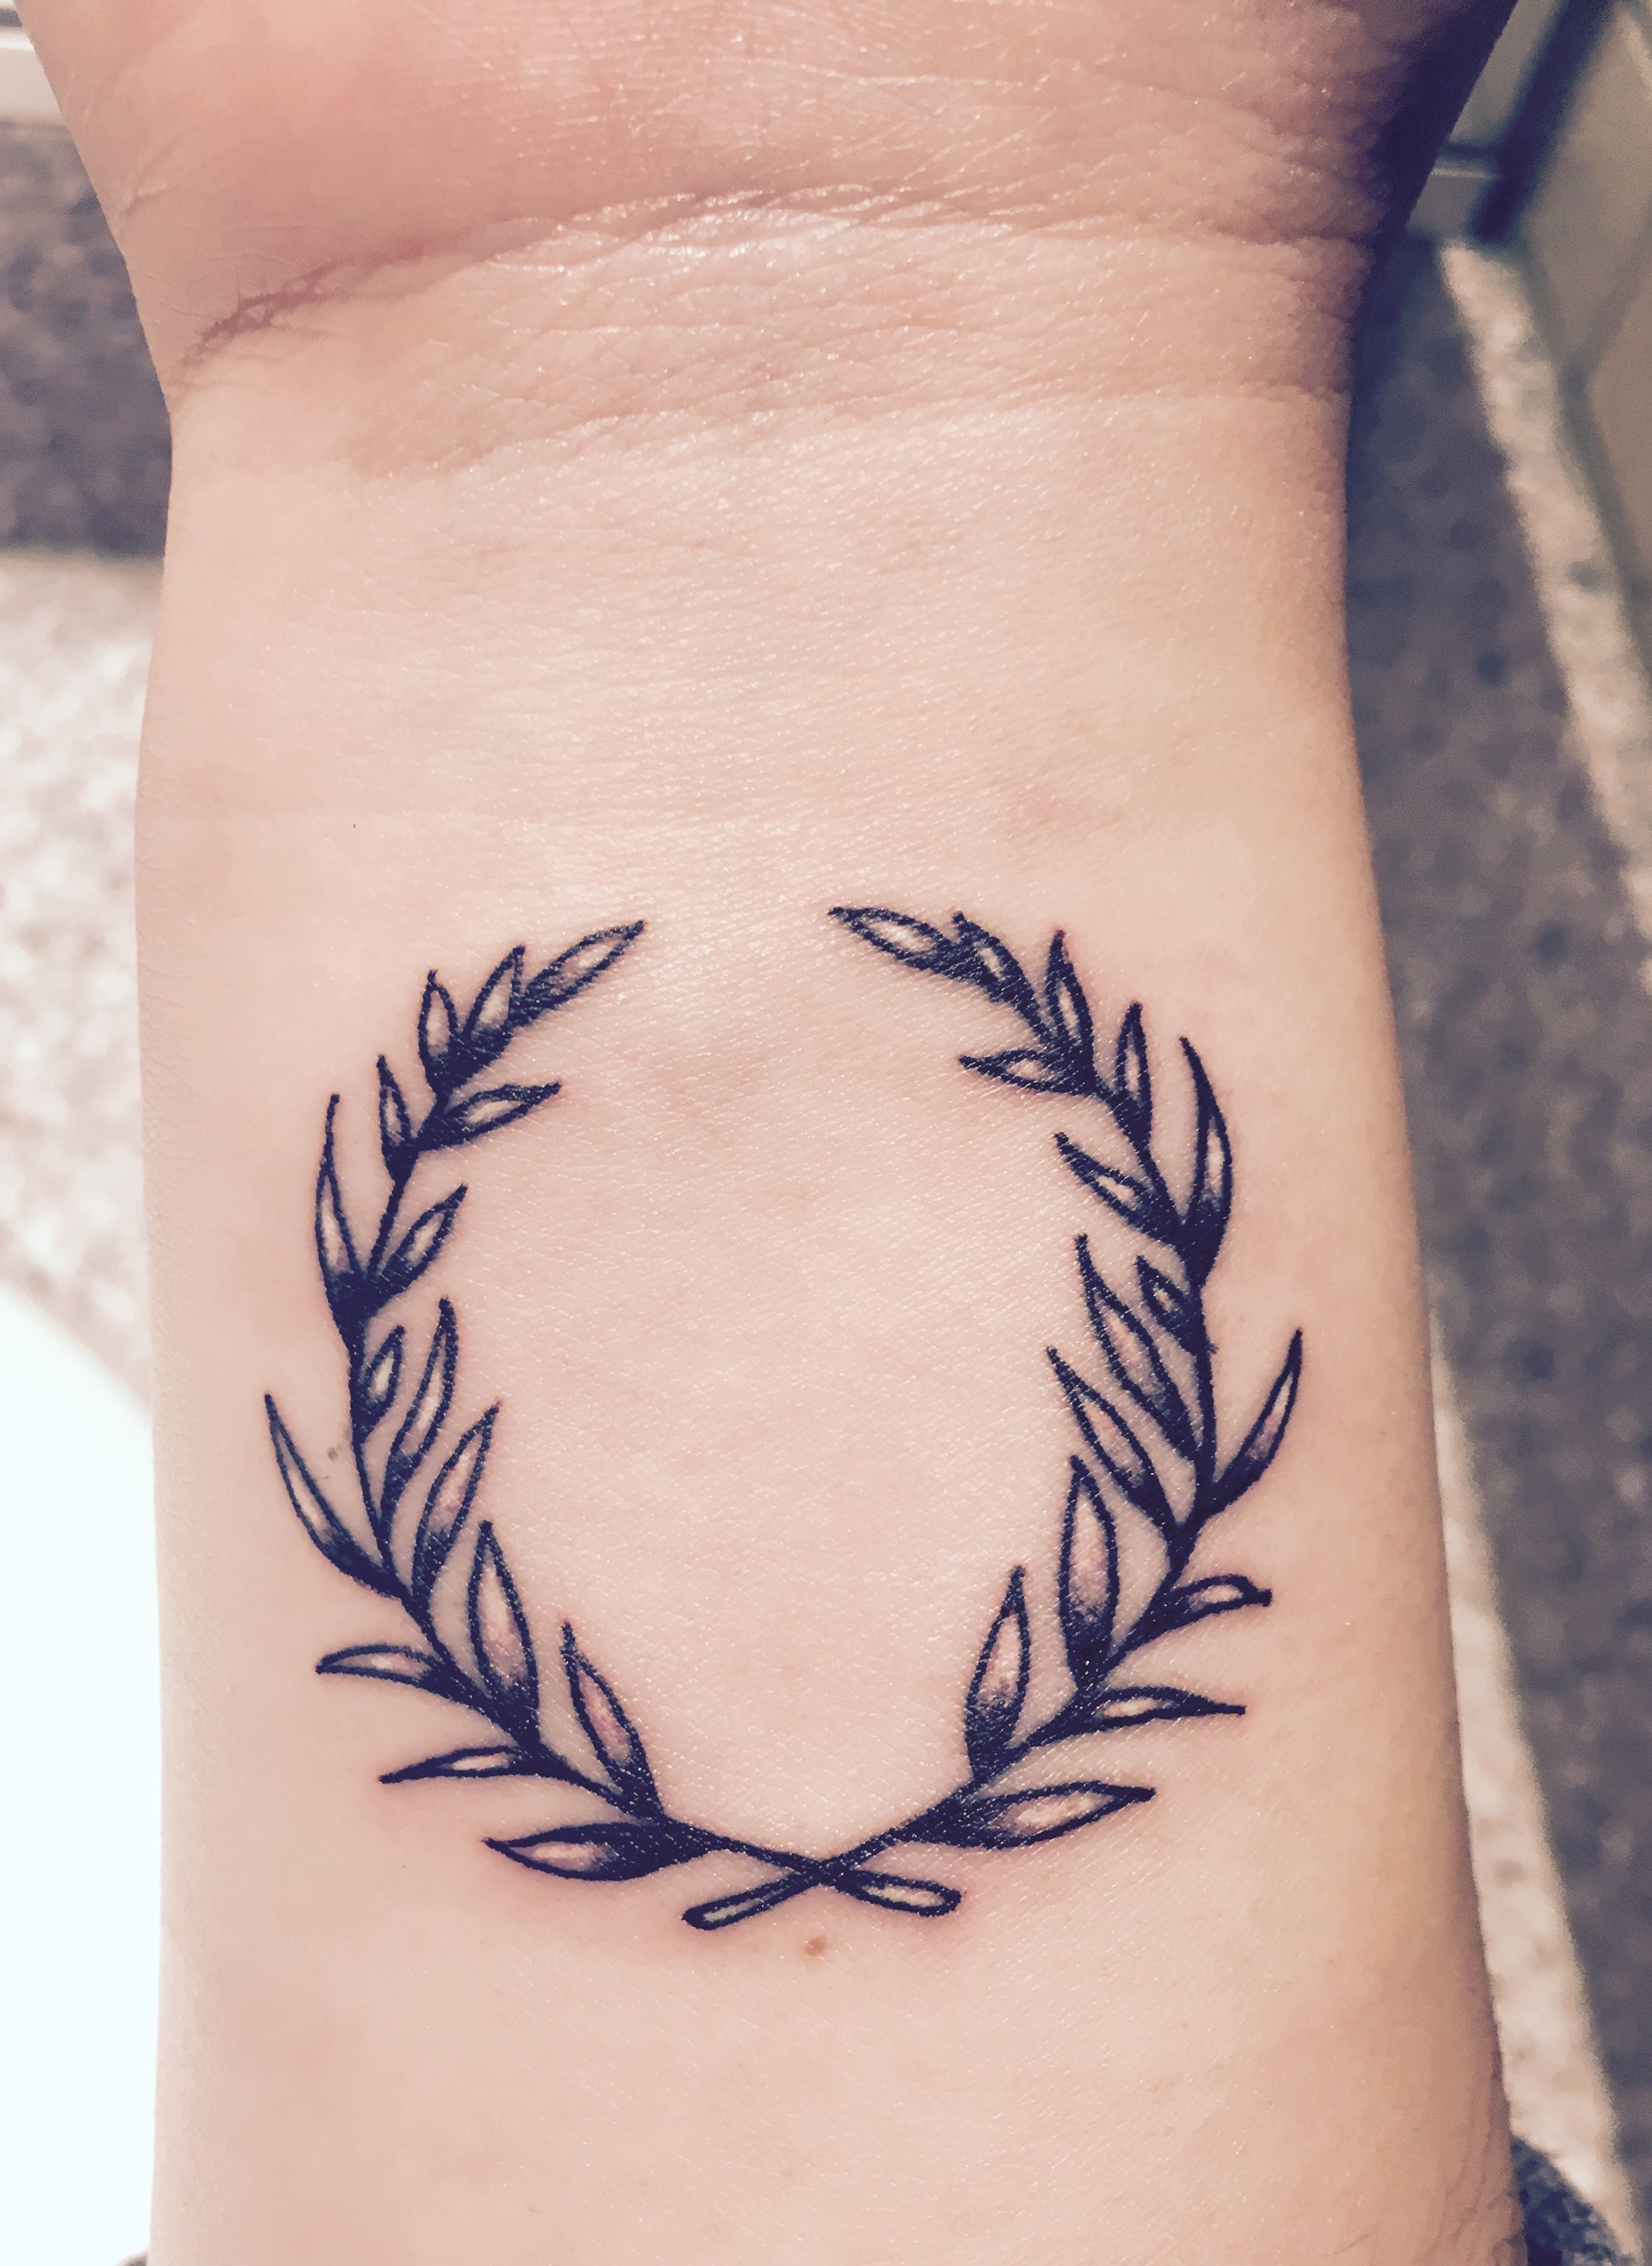 Olive Wreath Inner Wrist Tattoo Meanings Peace Growth Victory